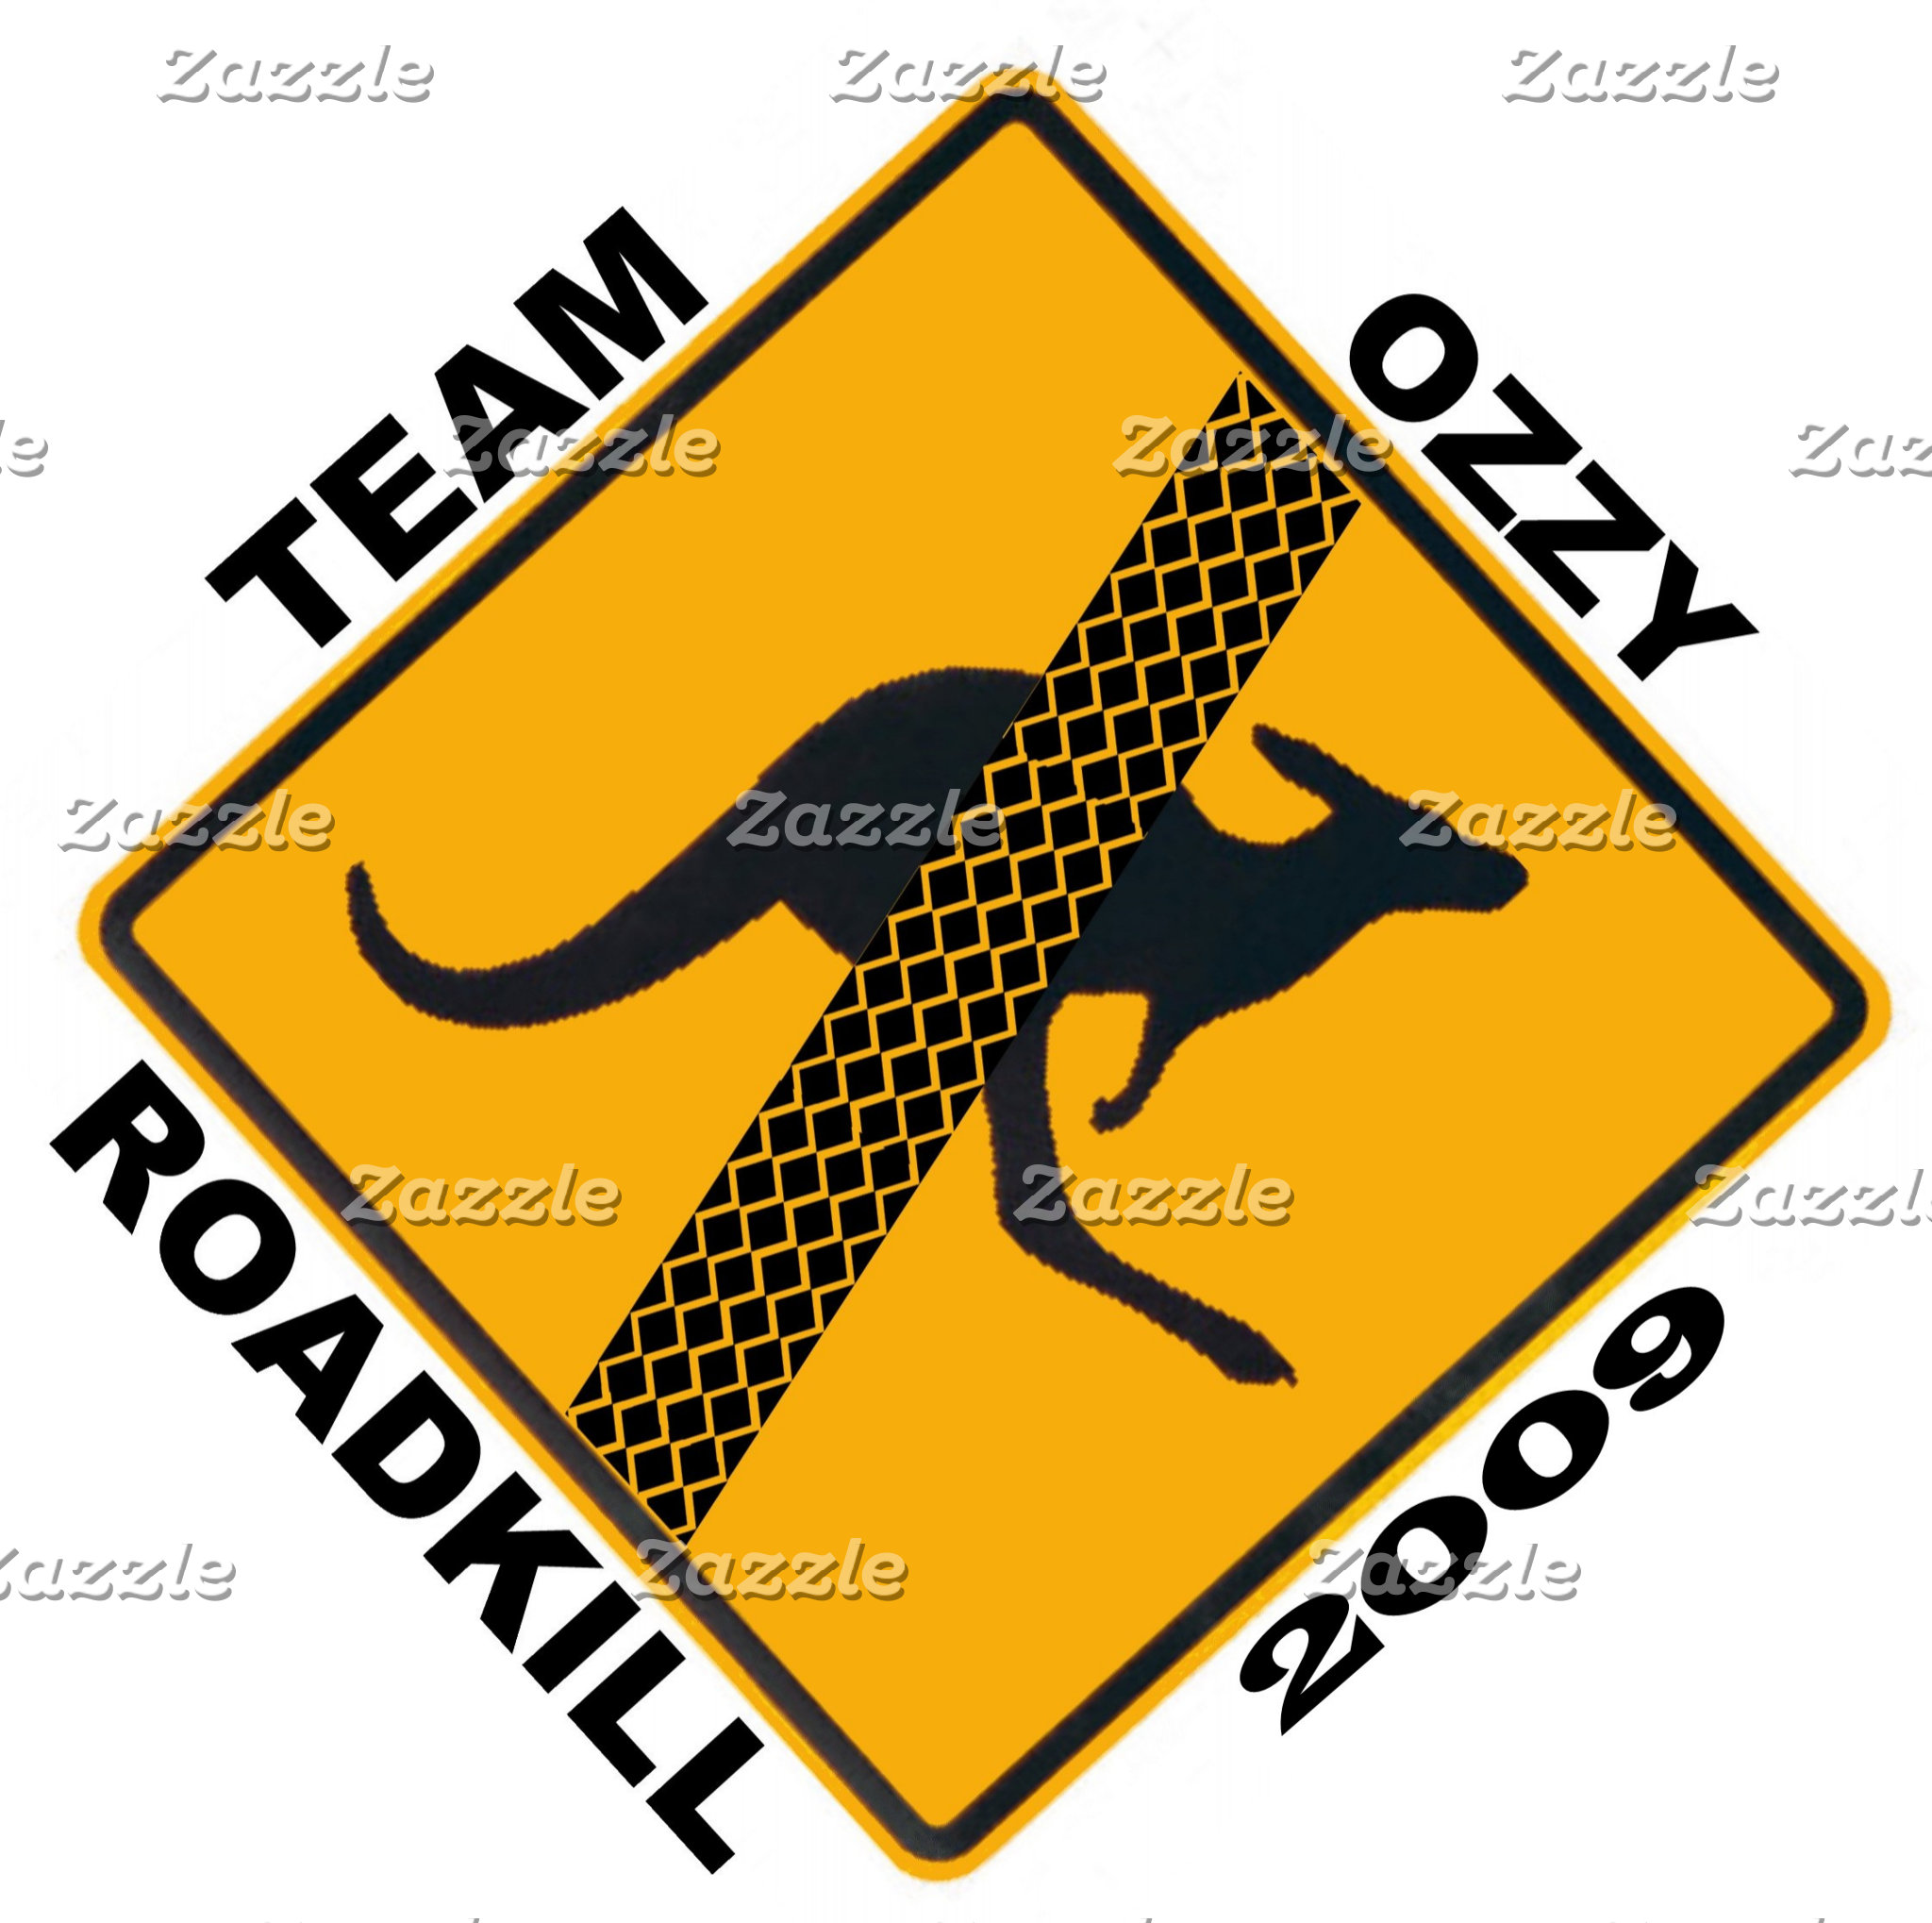 Team Ozzy Roadkill